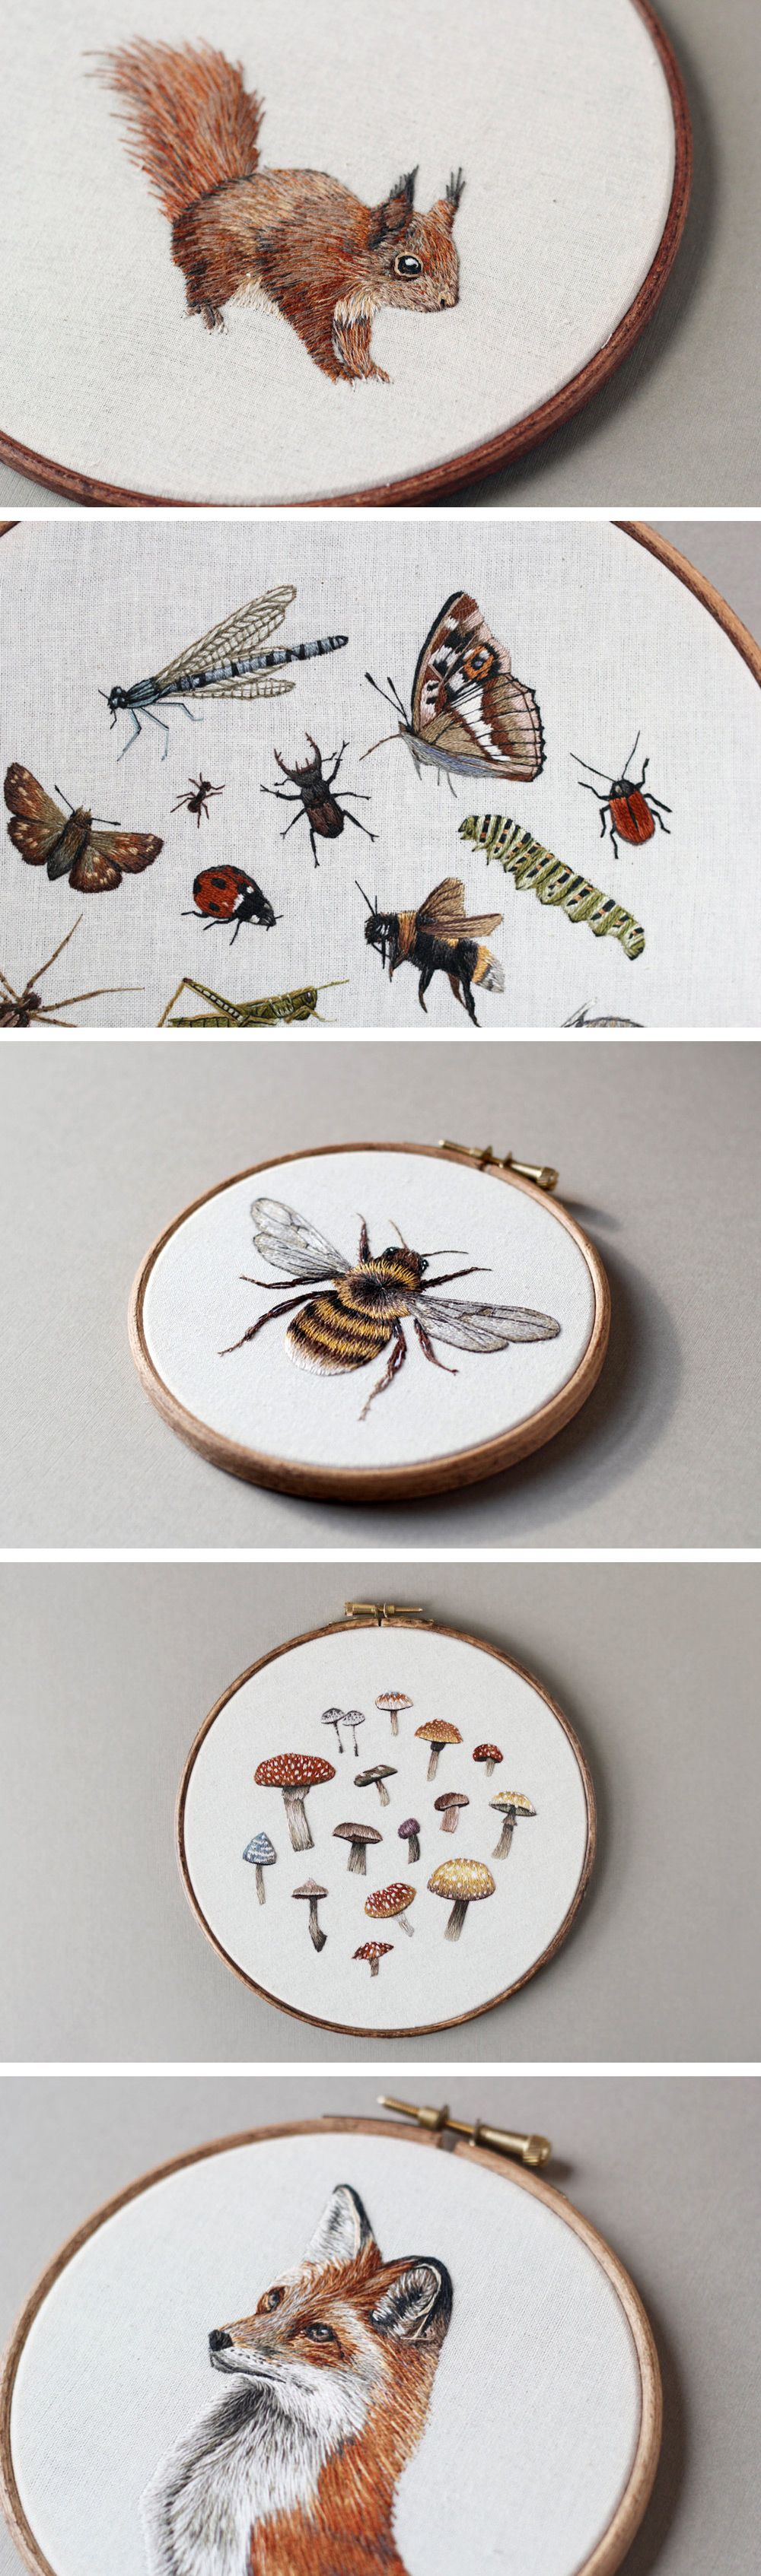 Embroidered Mushrooms, Animals, and Other Forest Creatures by ...